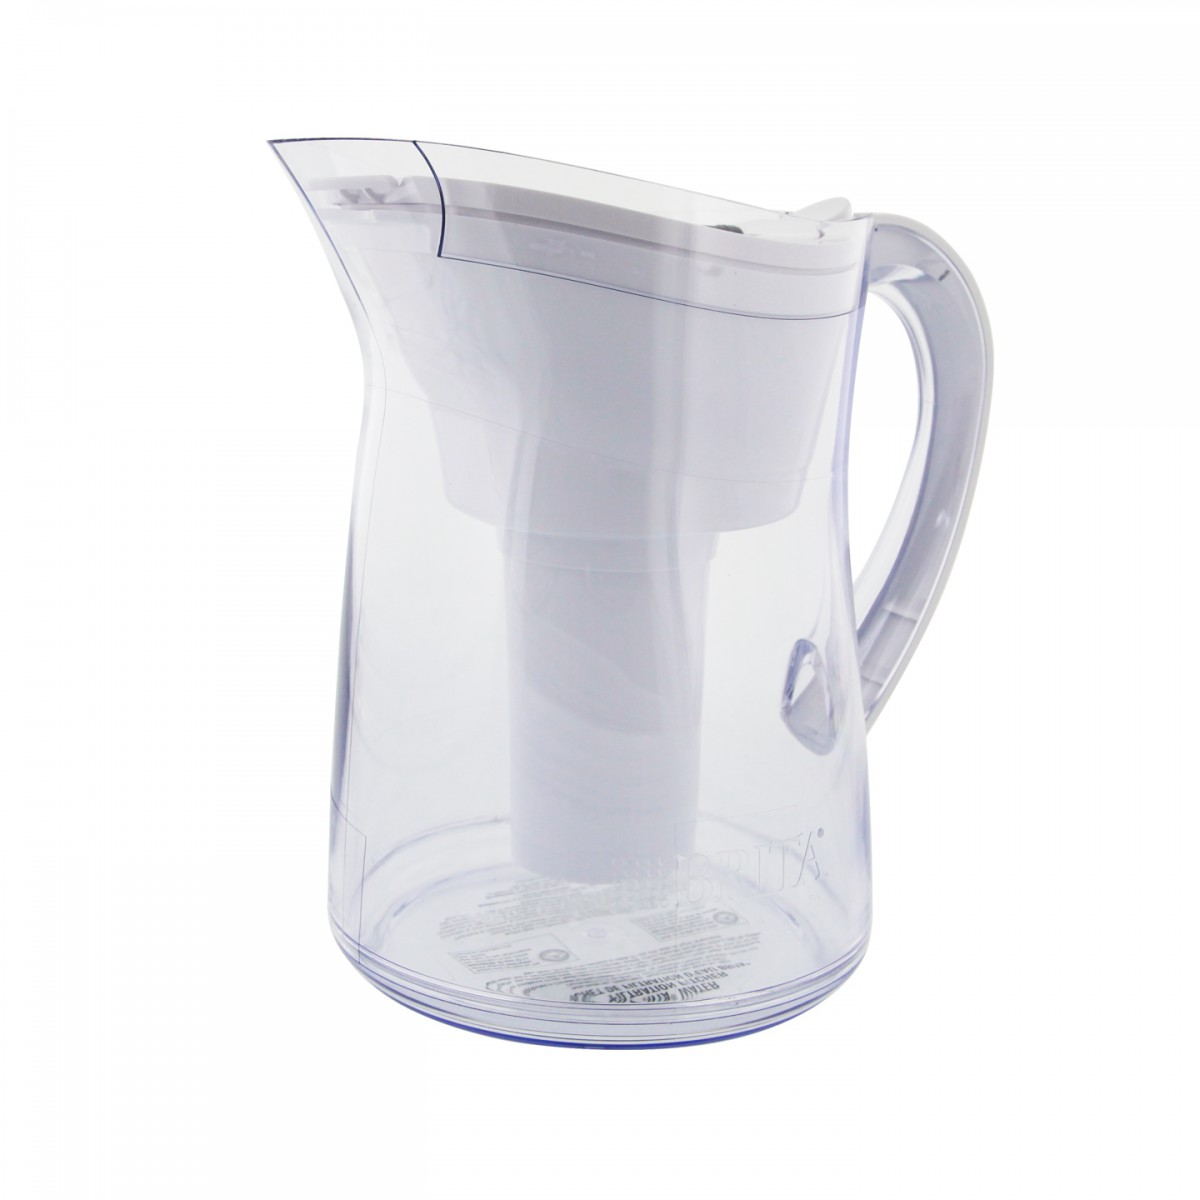 the brita products company suggestions to Brita gmbh company profile bottle filters the company's products are sold by mass merchants, home improvement stores, supermarkets, specialty stores, and at warehouse clubs cleaning products company clorox owns the north american distribution rights to brita products the company.